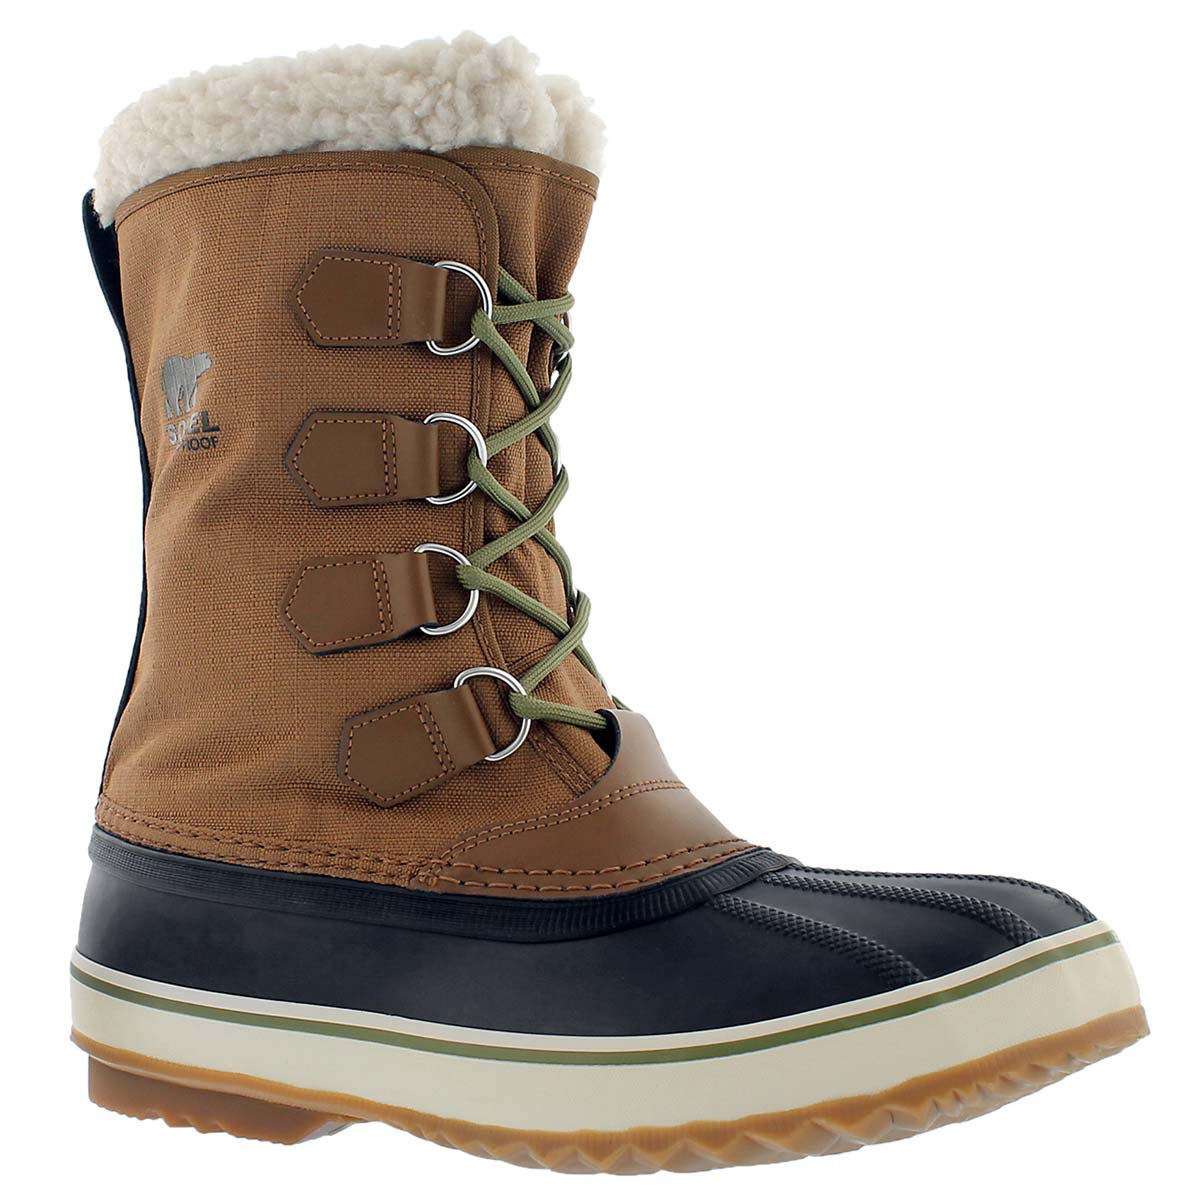 Buy Shoes Online Or At 125 Stores Across Canada D Island Casual Black Mns 1964 Pac Nylon Nutmeg Winter Boot